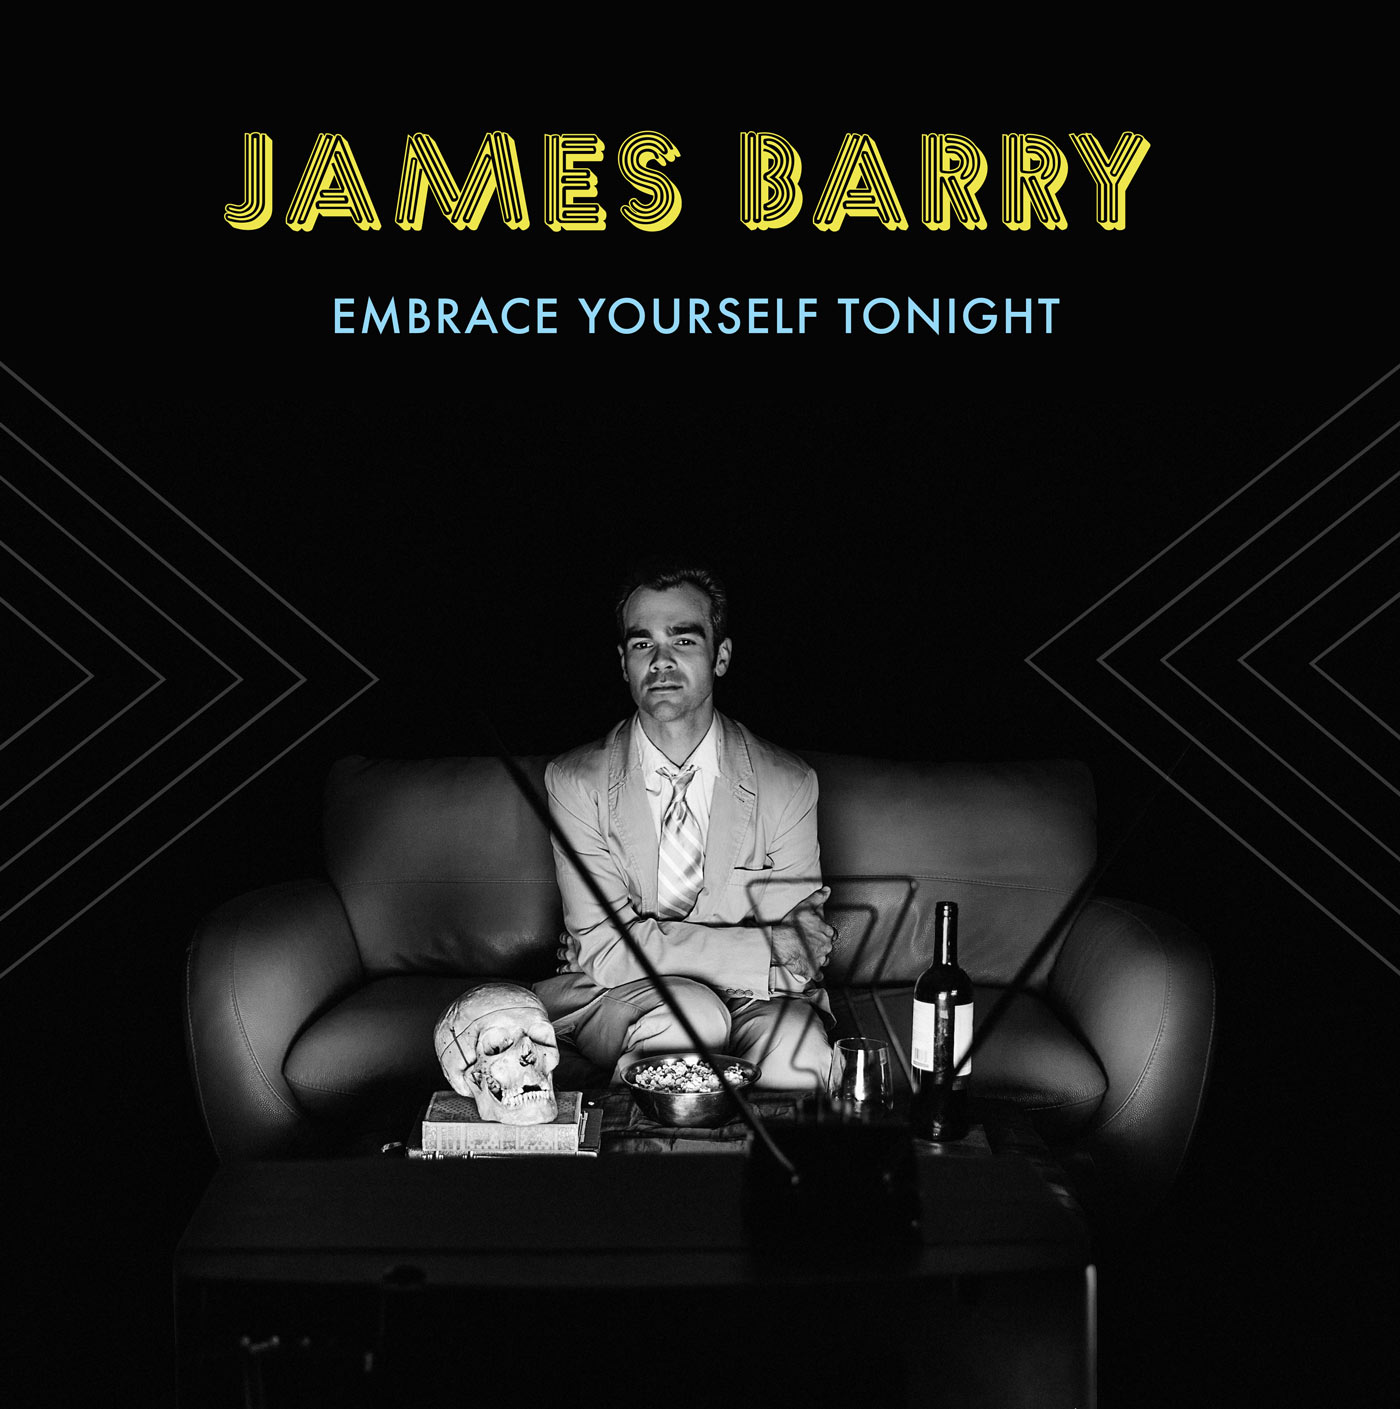 James Barry – Embrace Yourself Tonight – Record Sleeve Design image